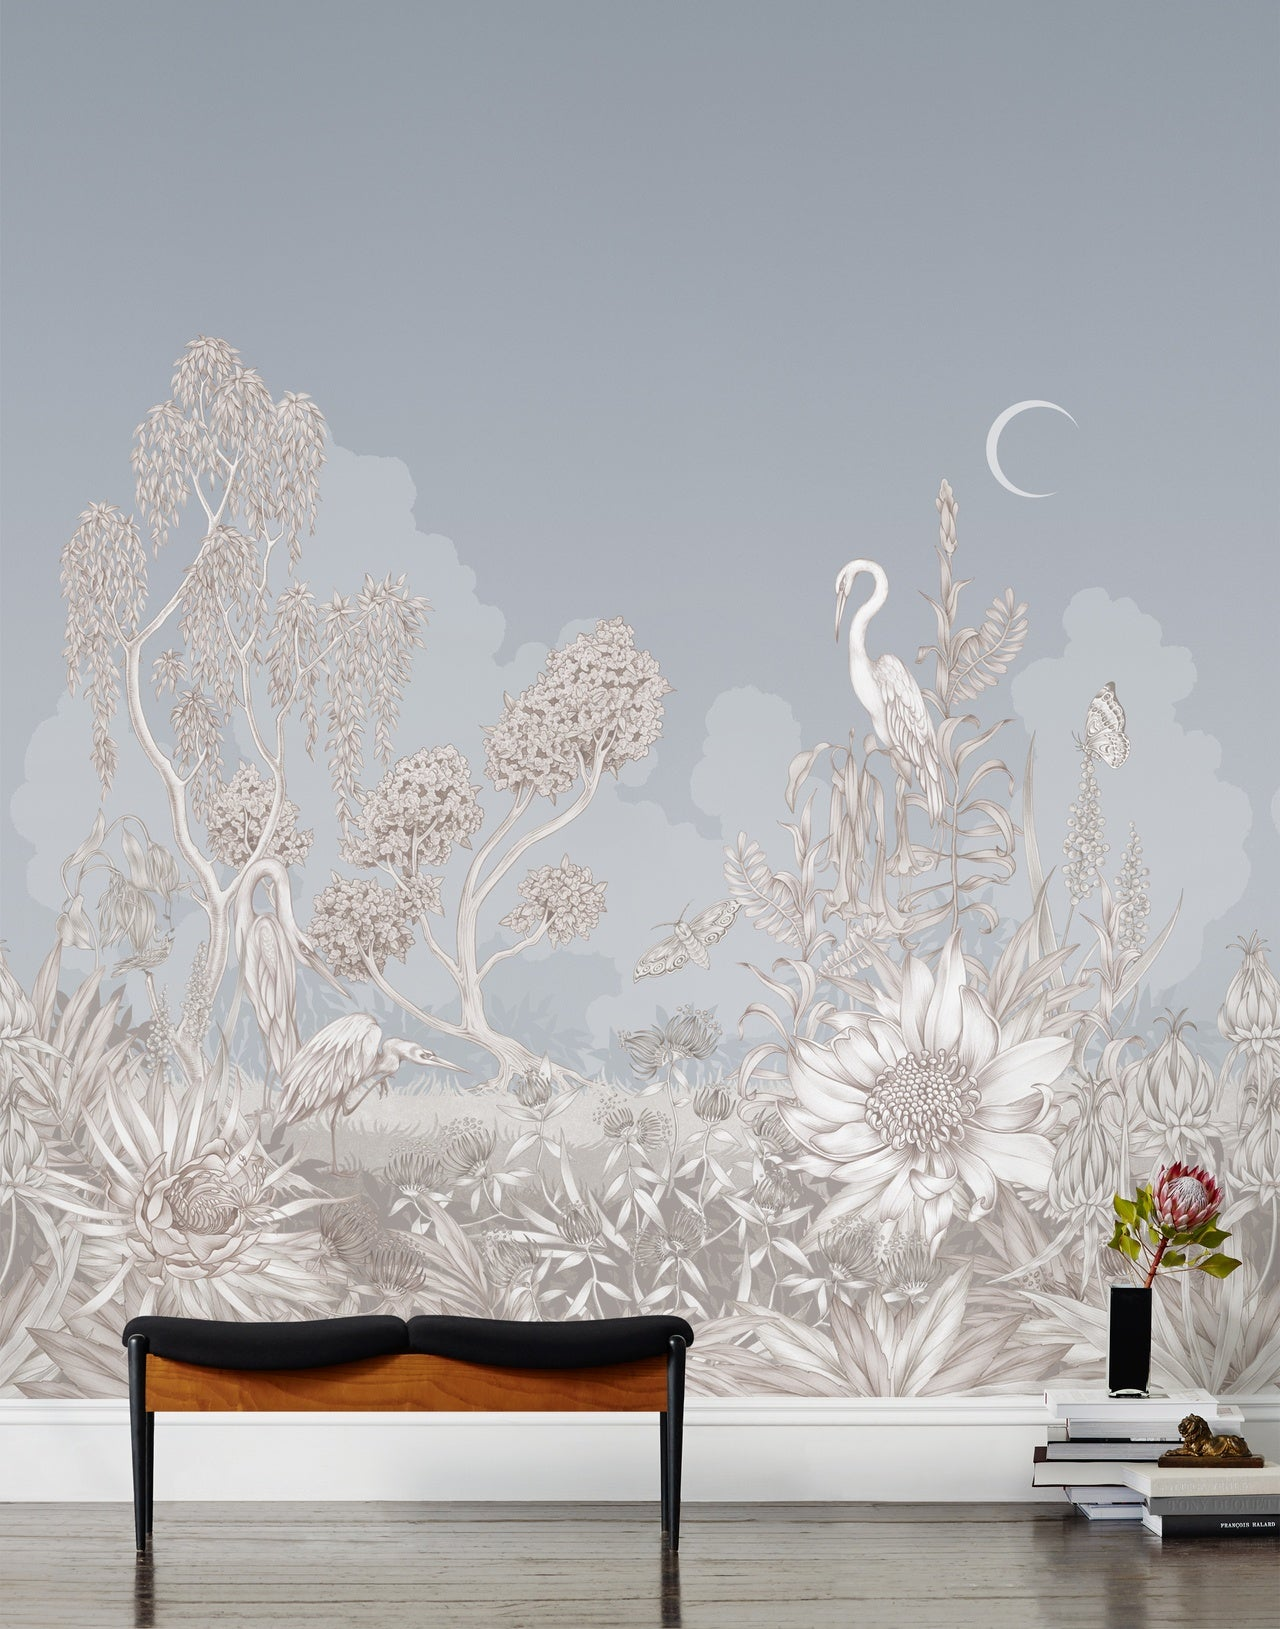 Night Heron Mist mural | Lisel Jane Ashlock collection | modern floral wallpapers and murals | Hygge & West